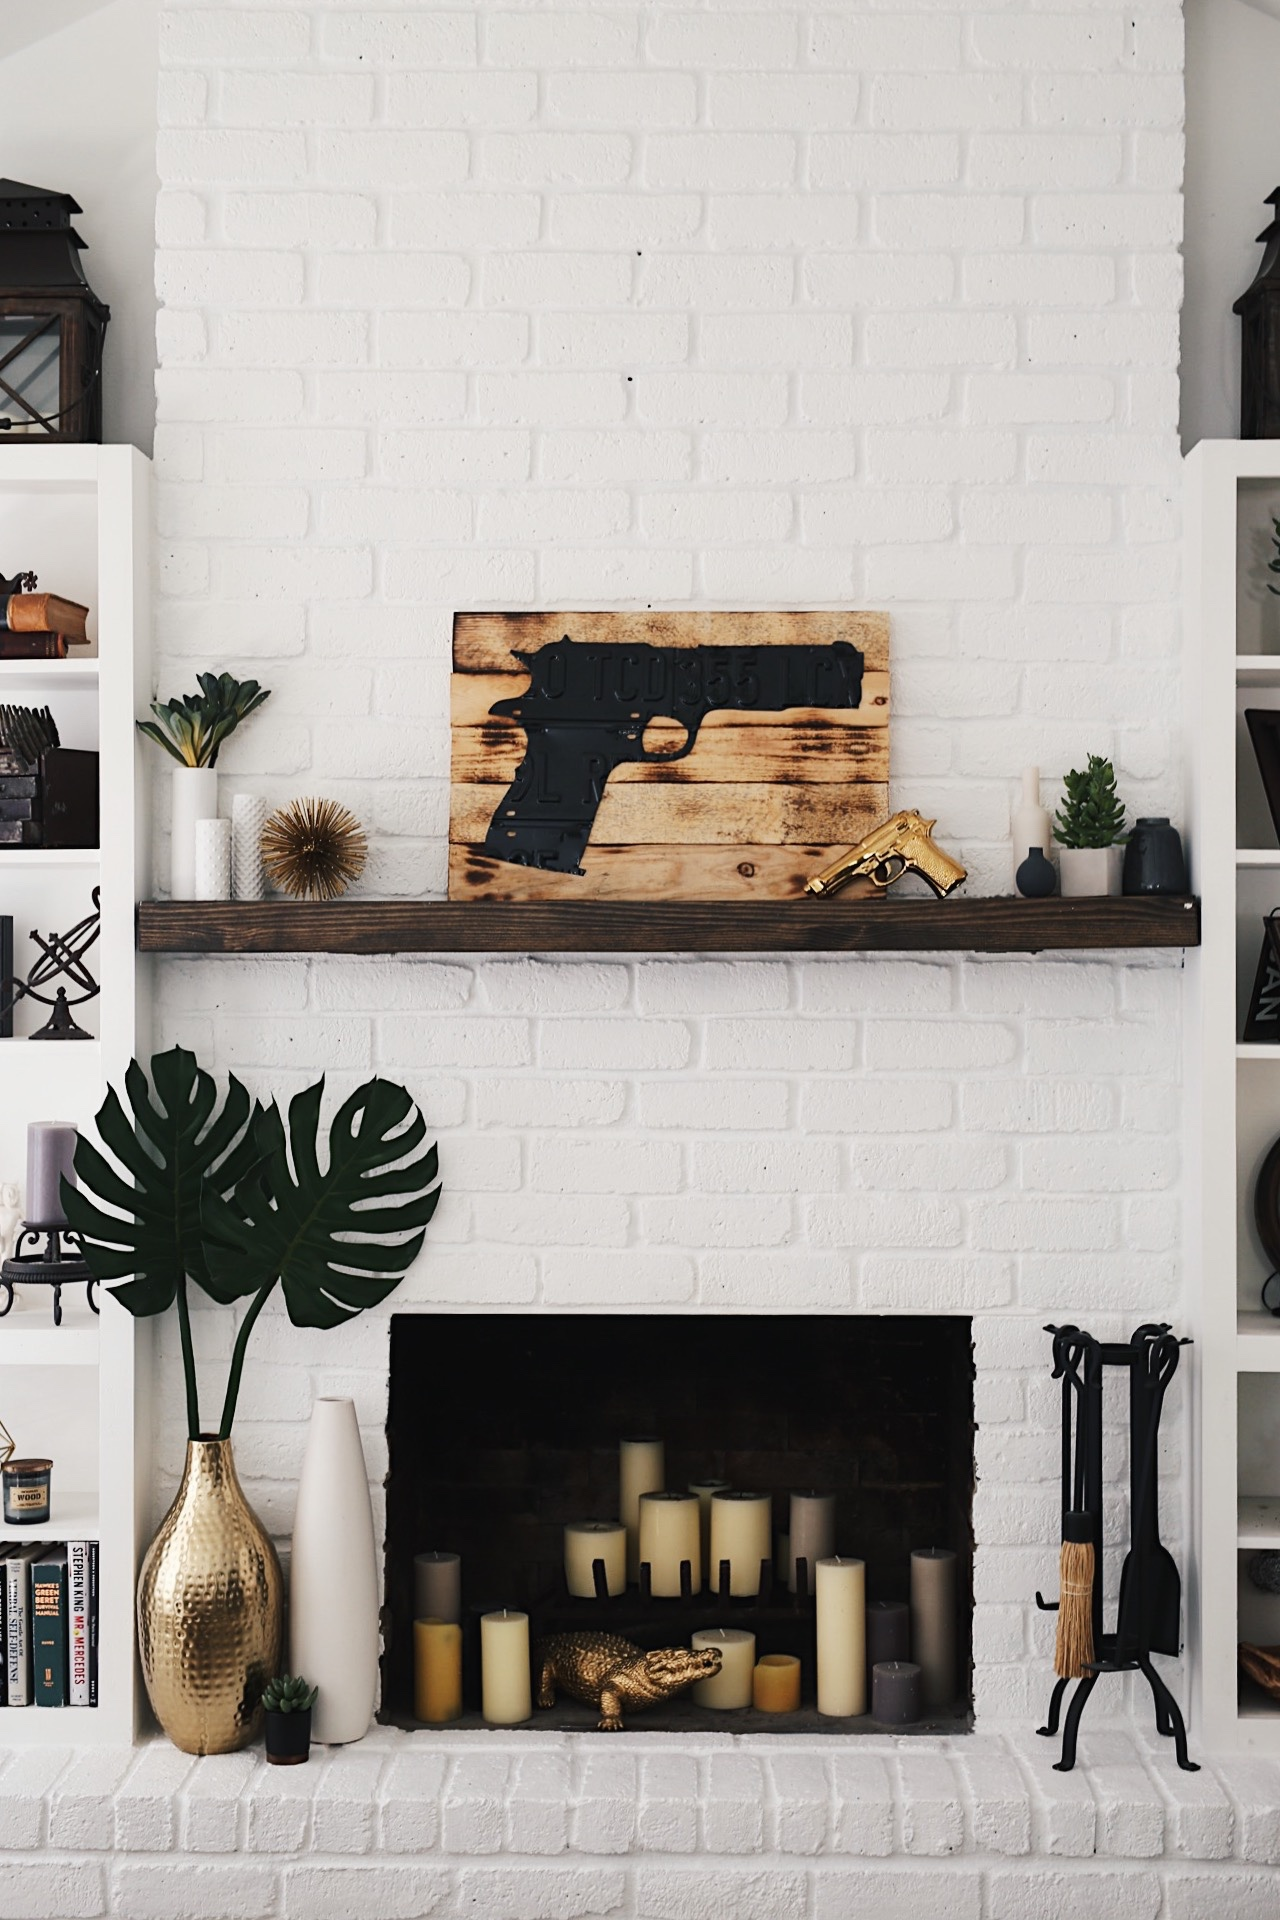 Incredible How To Paint A Brick Fireplace How To Easily Affordably Paint A Brick Fireplace Dressed Brick Fireplace Mantle Brick Fireplace Black Mantle houzz-02 White Brick Fireplace